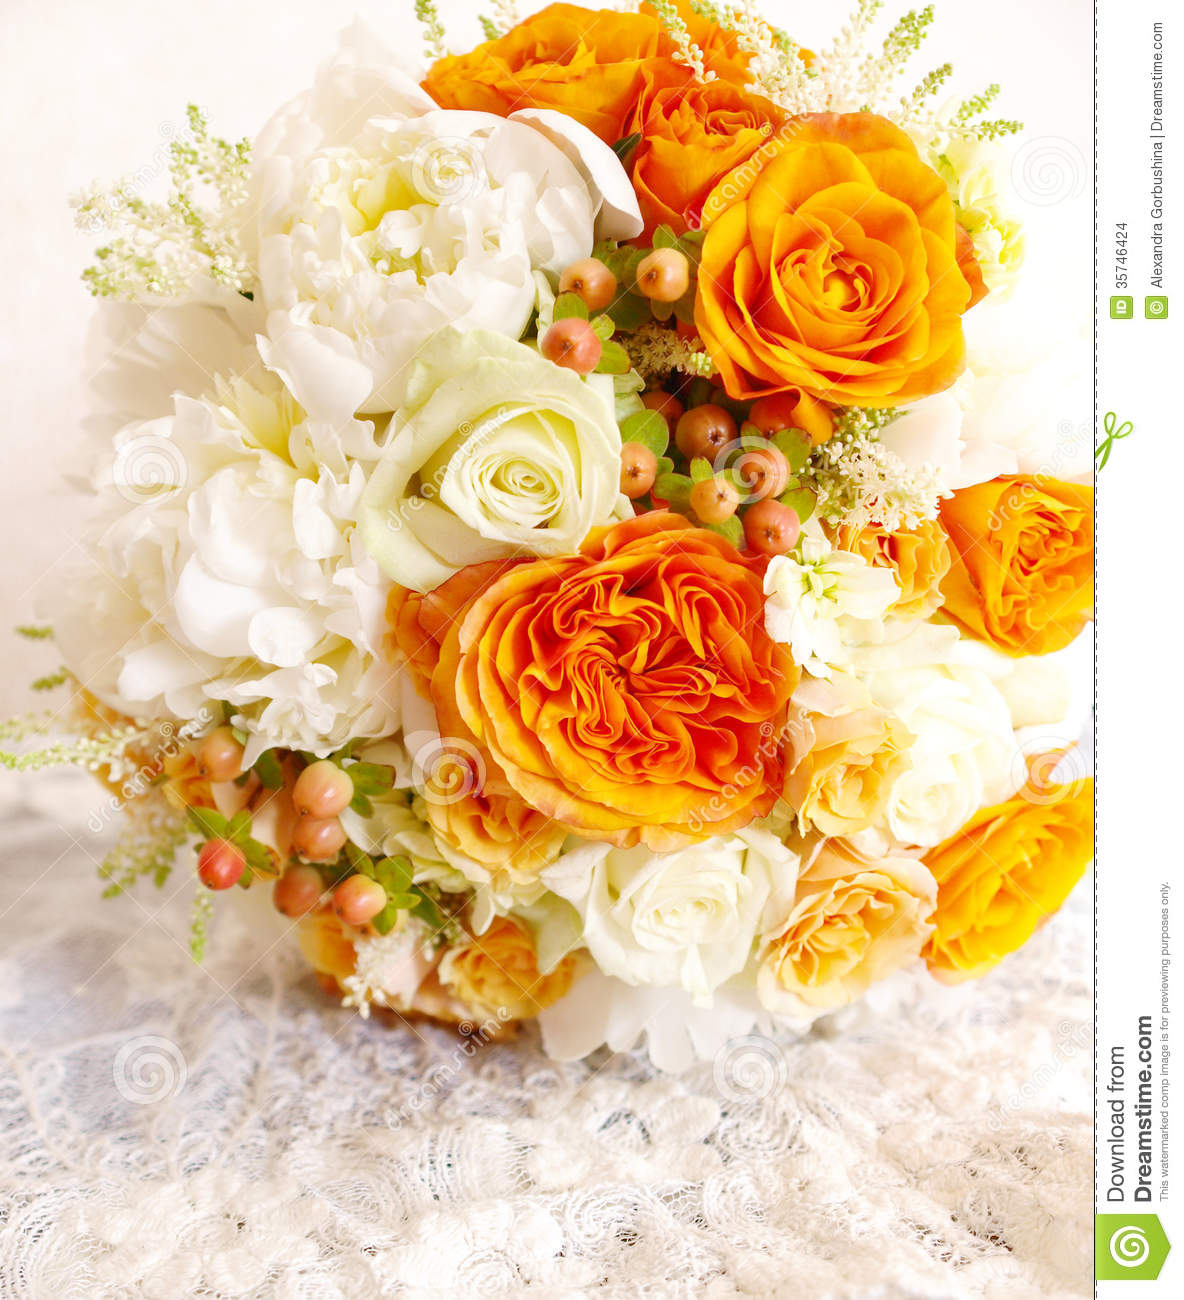 Vintage orange ivory white wedding bouquet stock photo image of vintage orange ivory white wedding bouquet izmirmasajfo